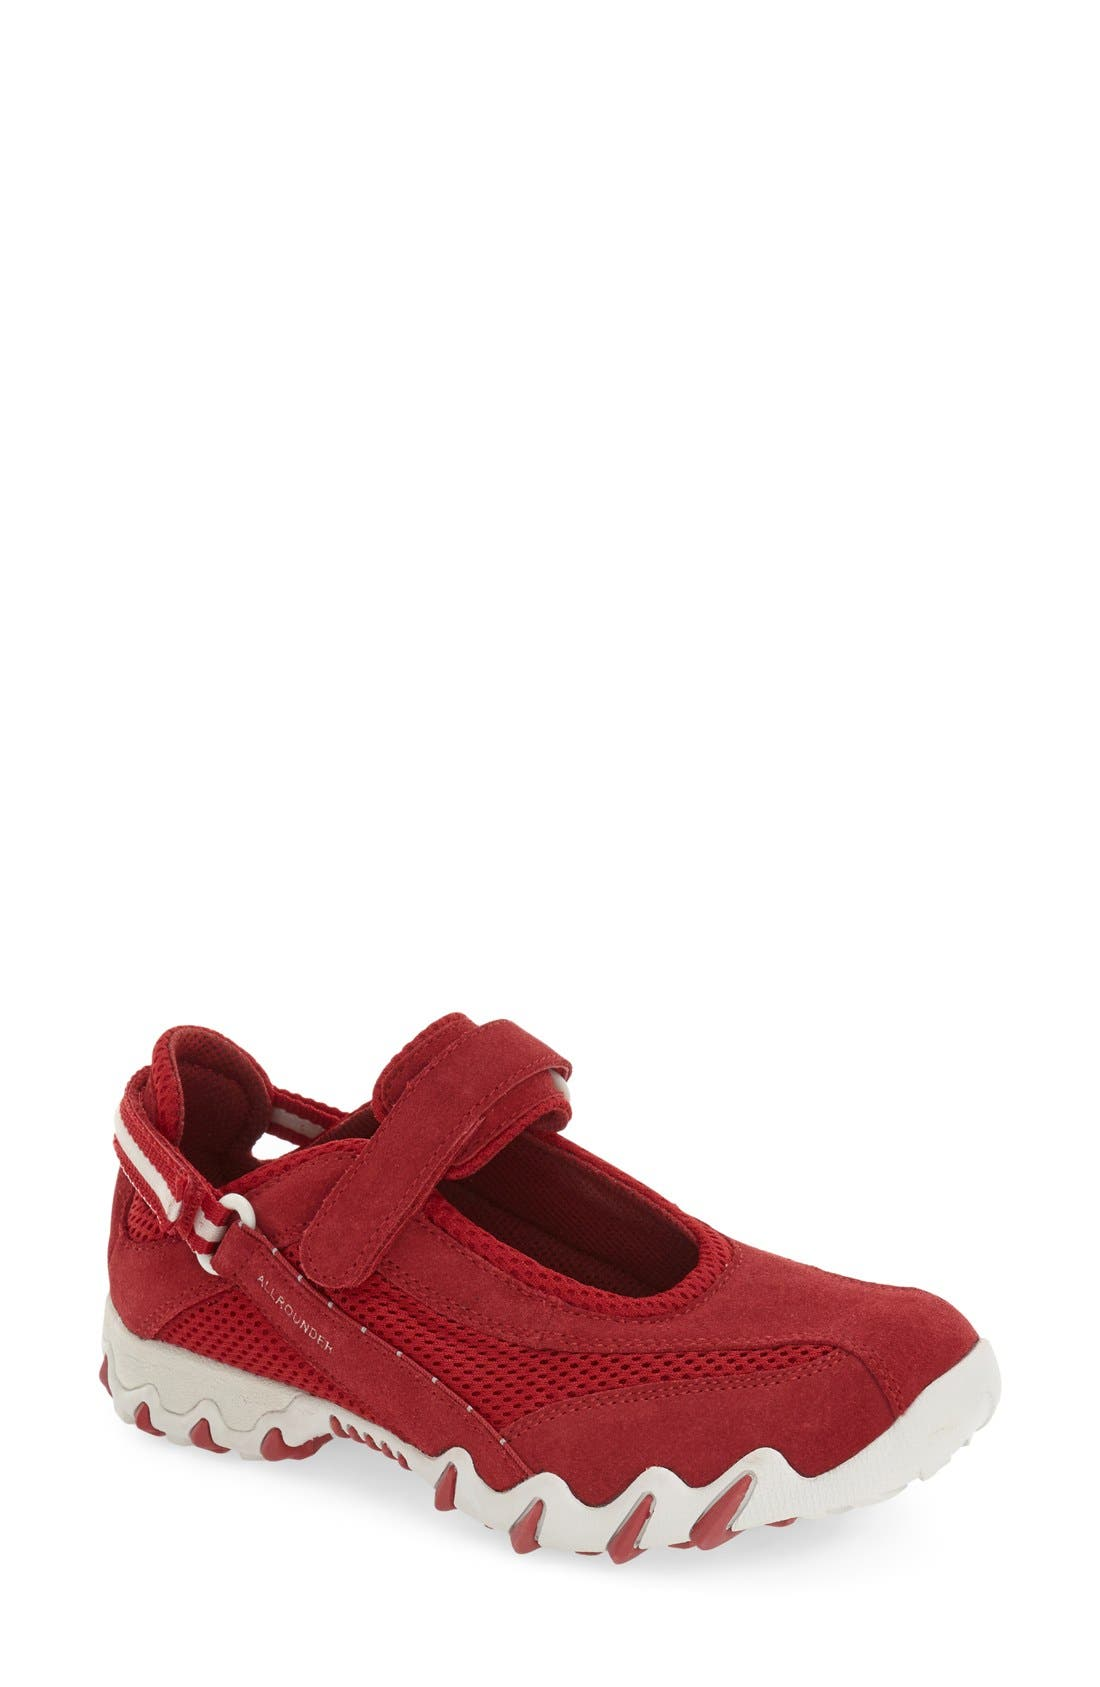 'Niro' Athletic Shoe,                         Main,                         color, Red Suede